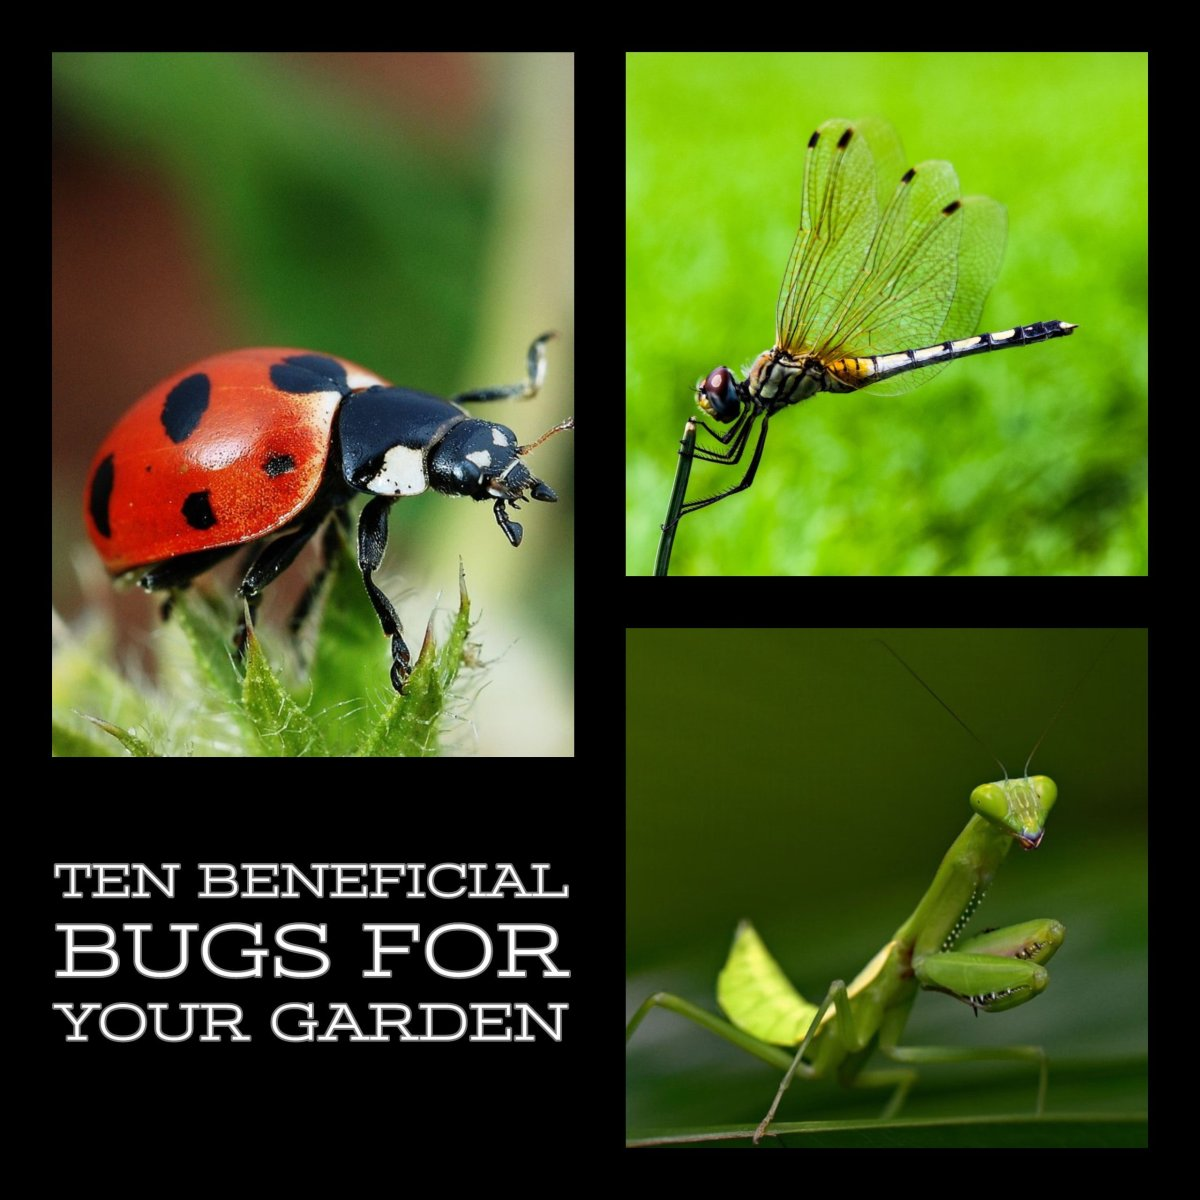 Ten beneficial bugs for your garden.